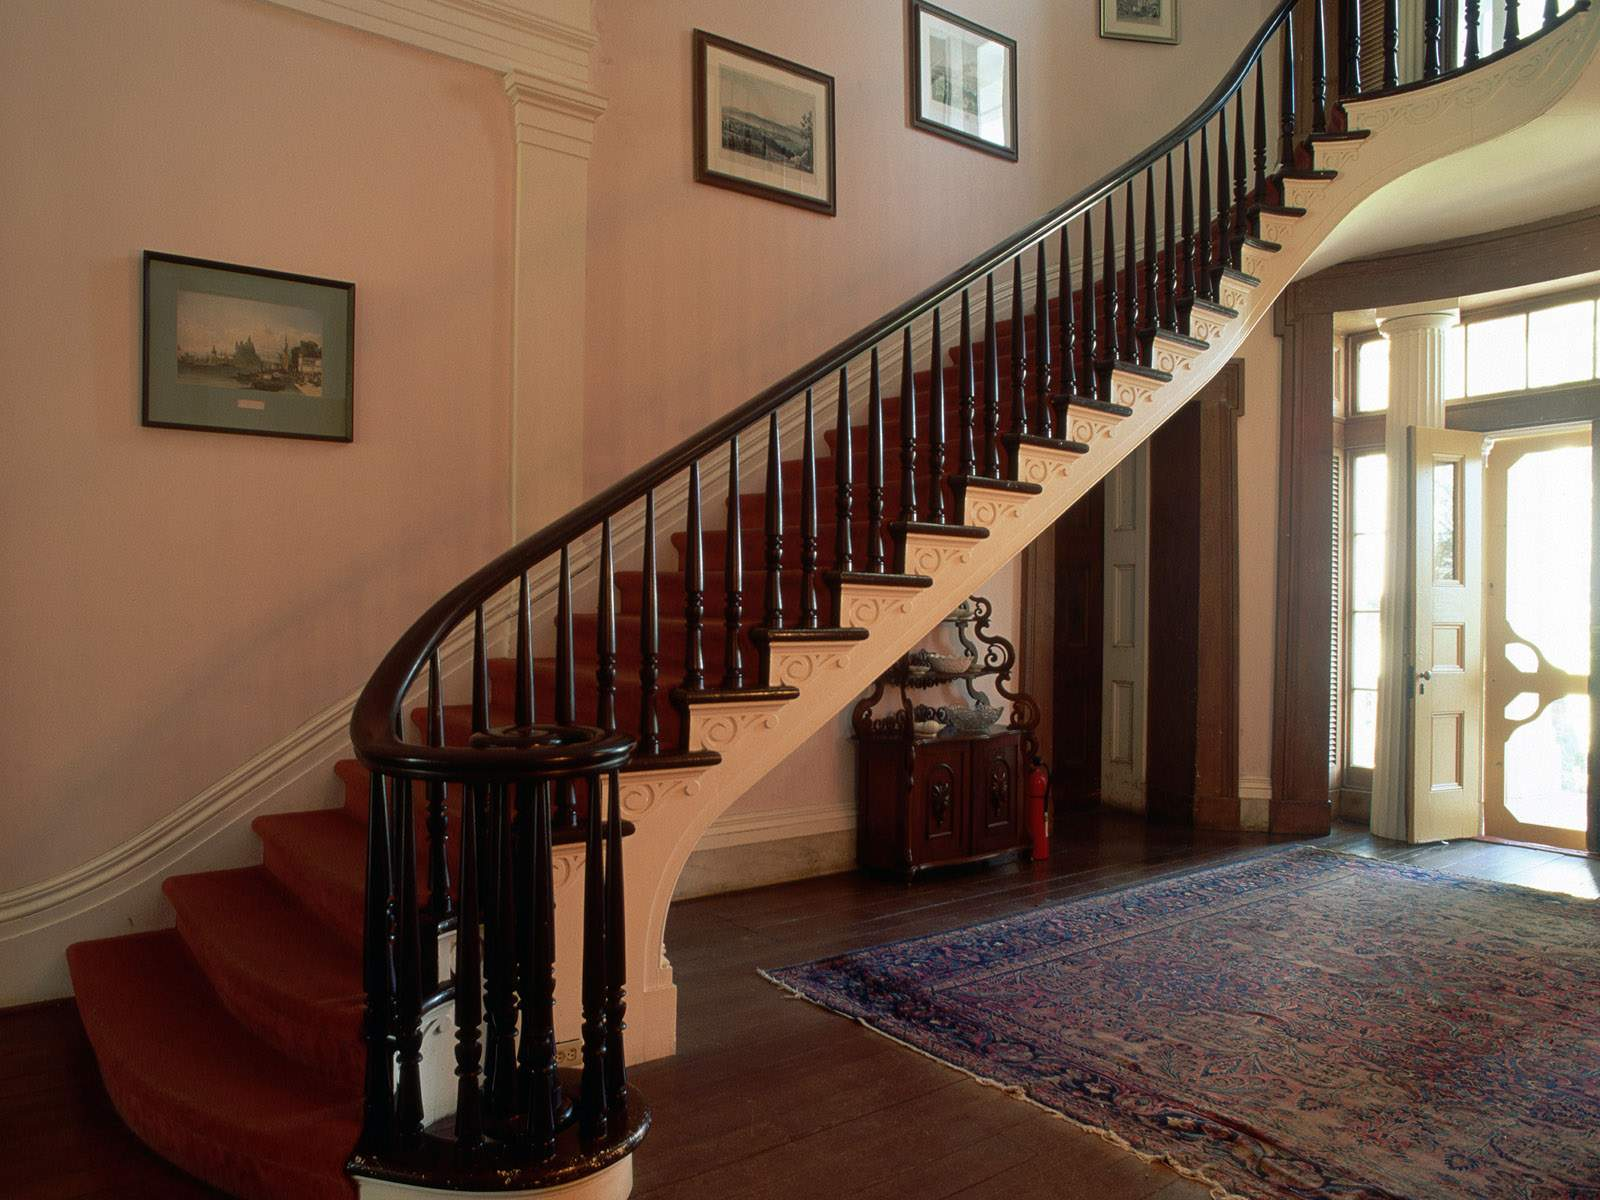 Staircases in kerala homes - Stairs design inside house ...